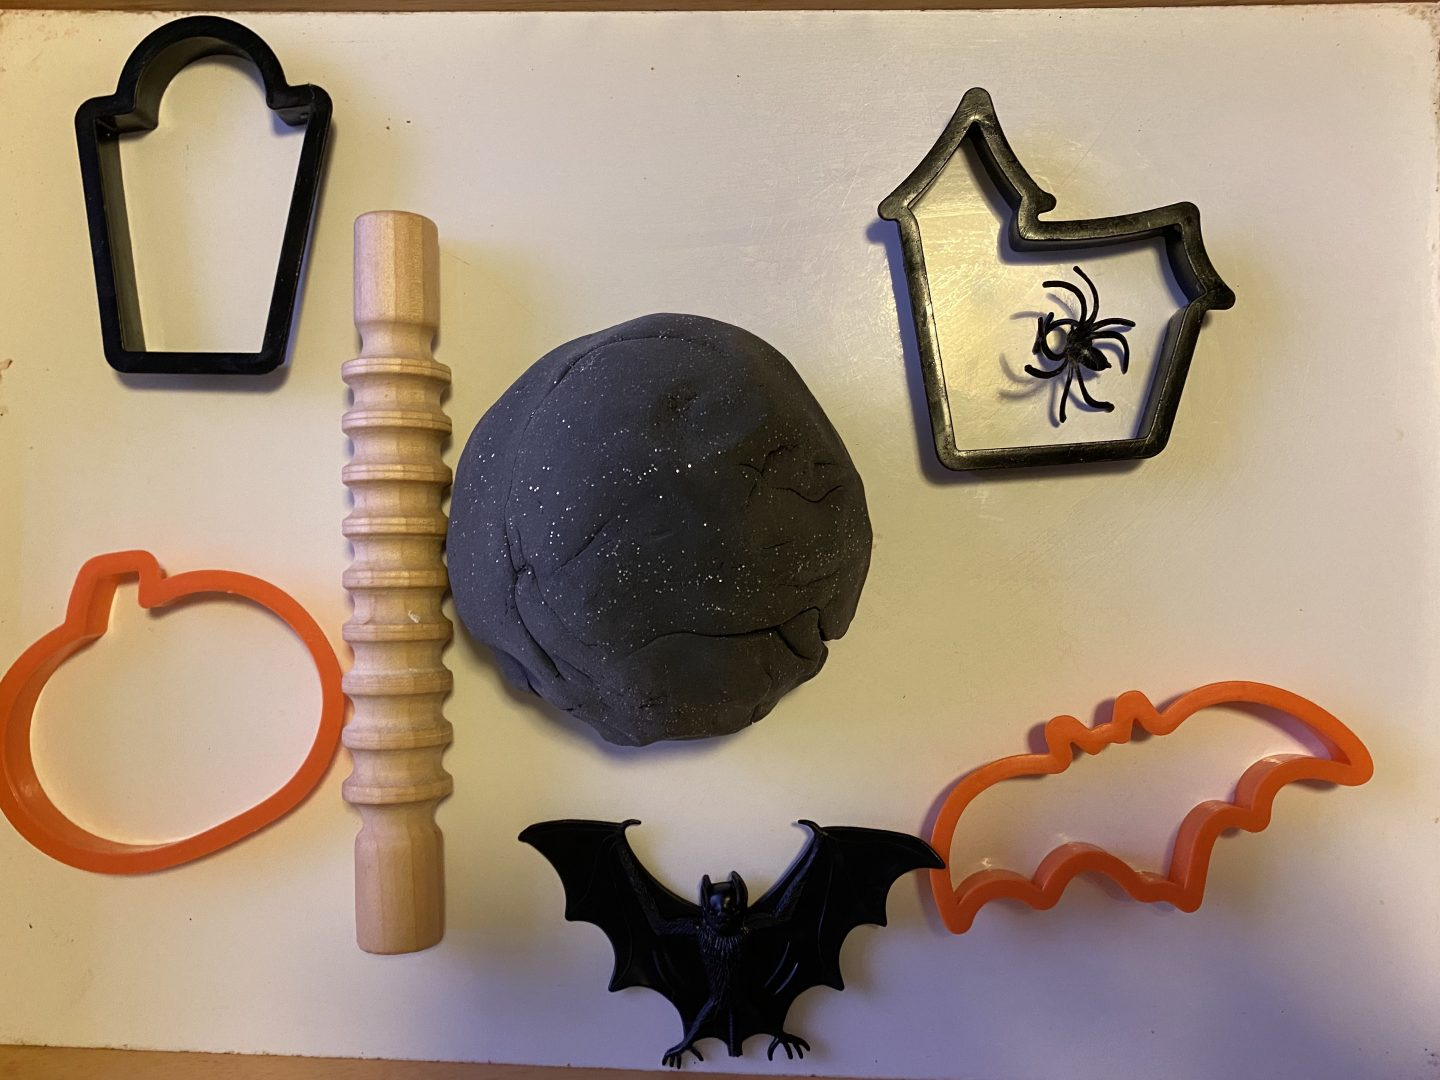 Homemade  Playdough  for Halloween with a black playdough ball and some haloween cookie cutters